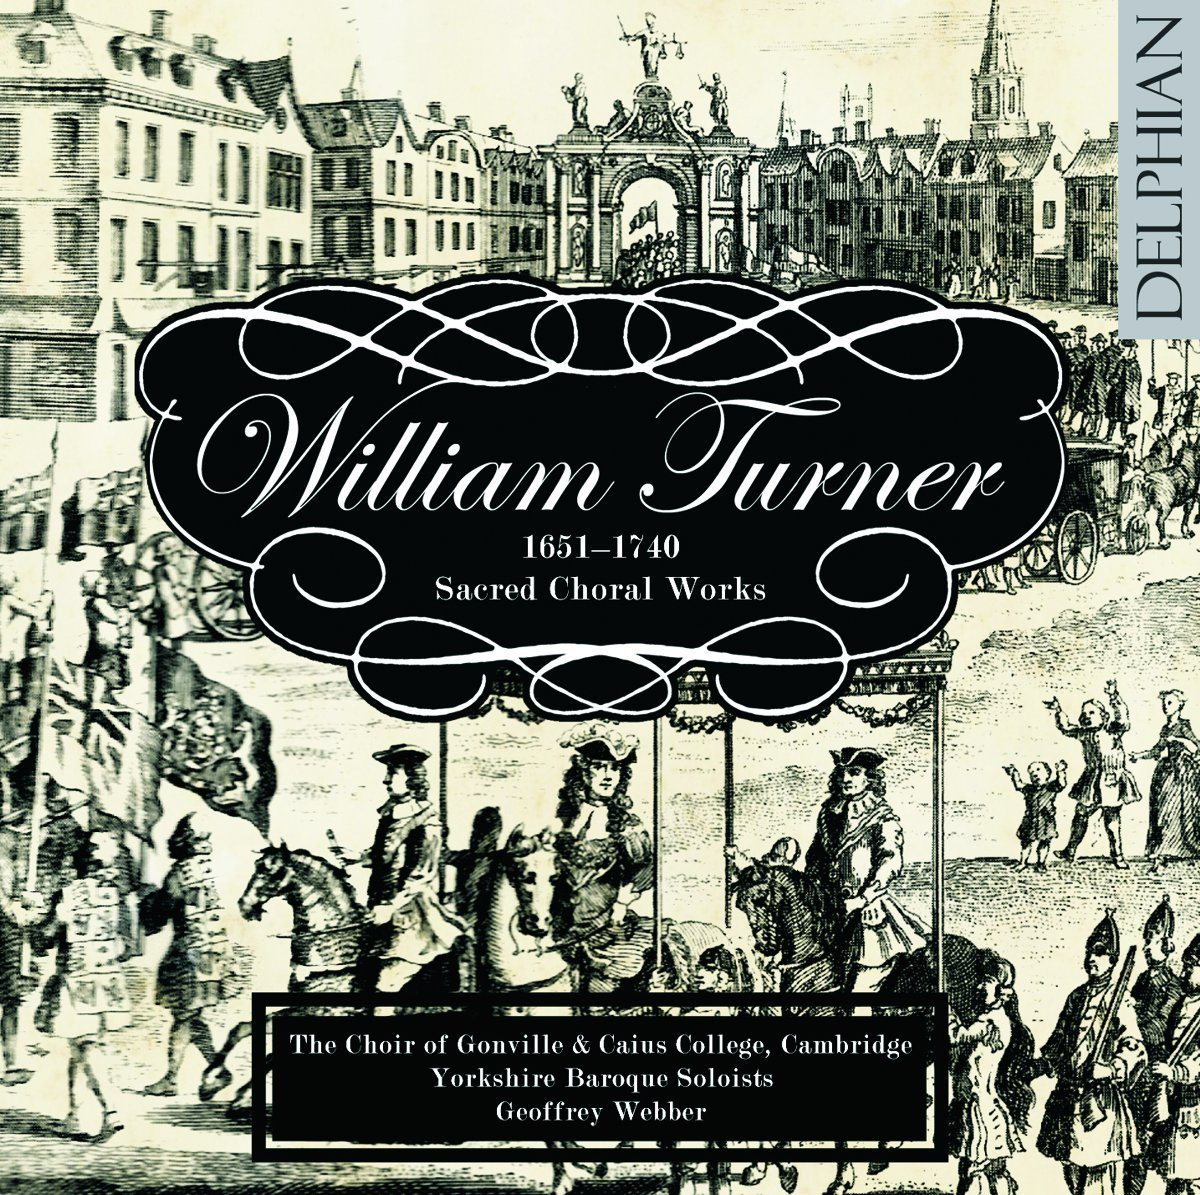 William Turner (1651–1740): Sacred Choral Music CD Delphian Records